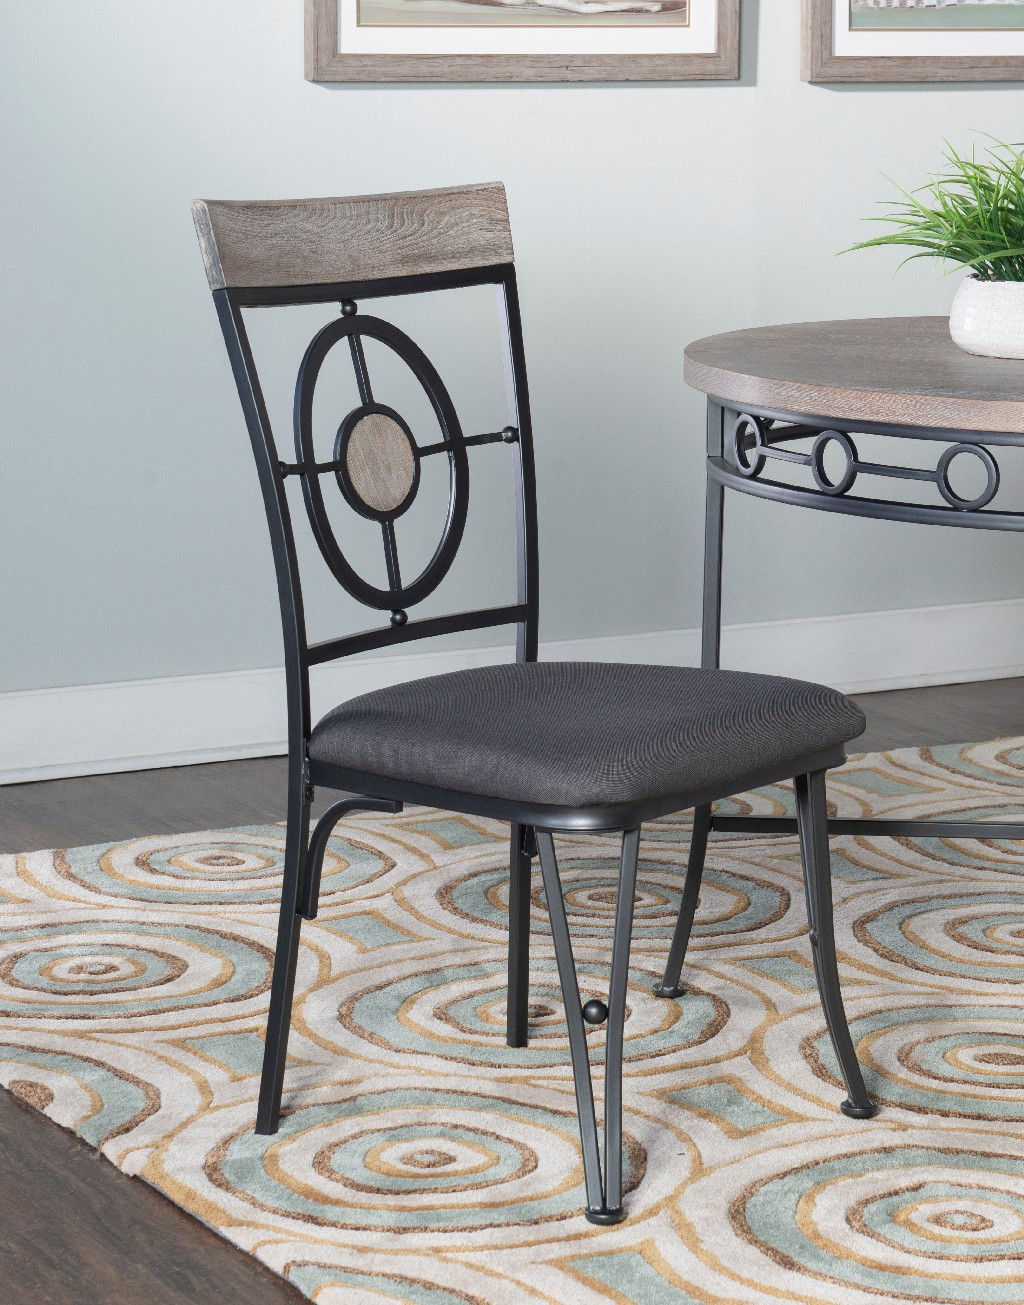 Barker Side Chair in Natural/Black - Powell D1115D17SC